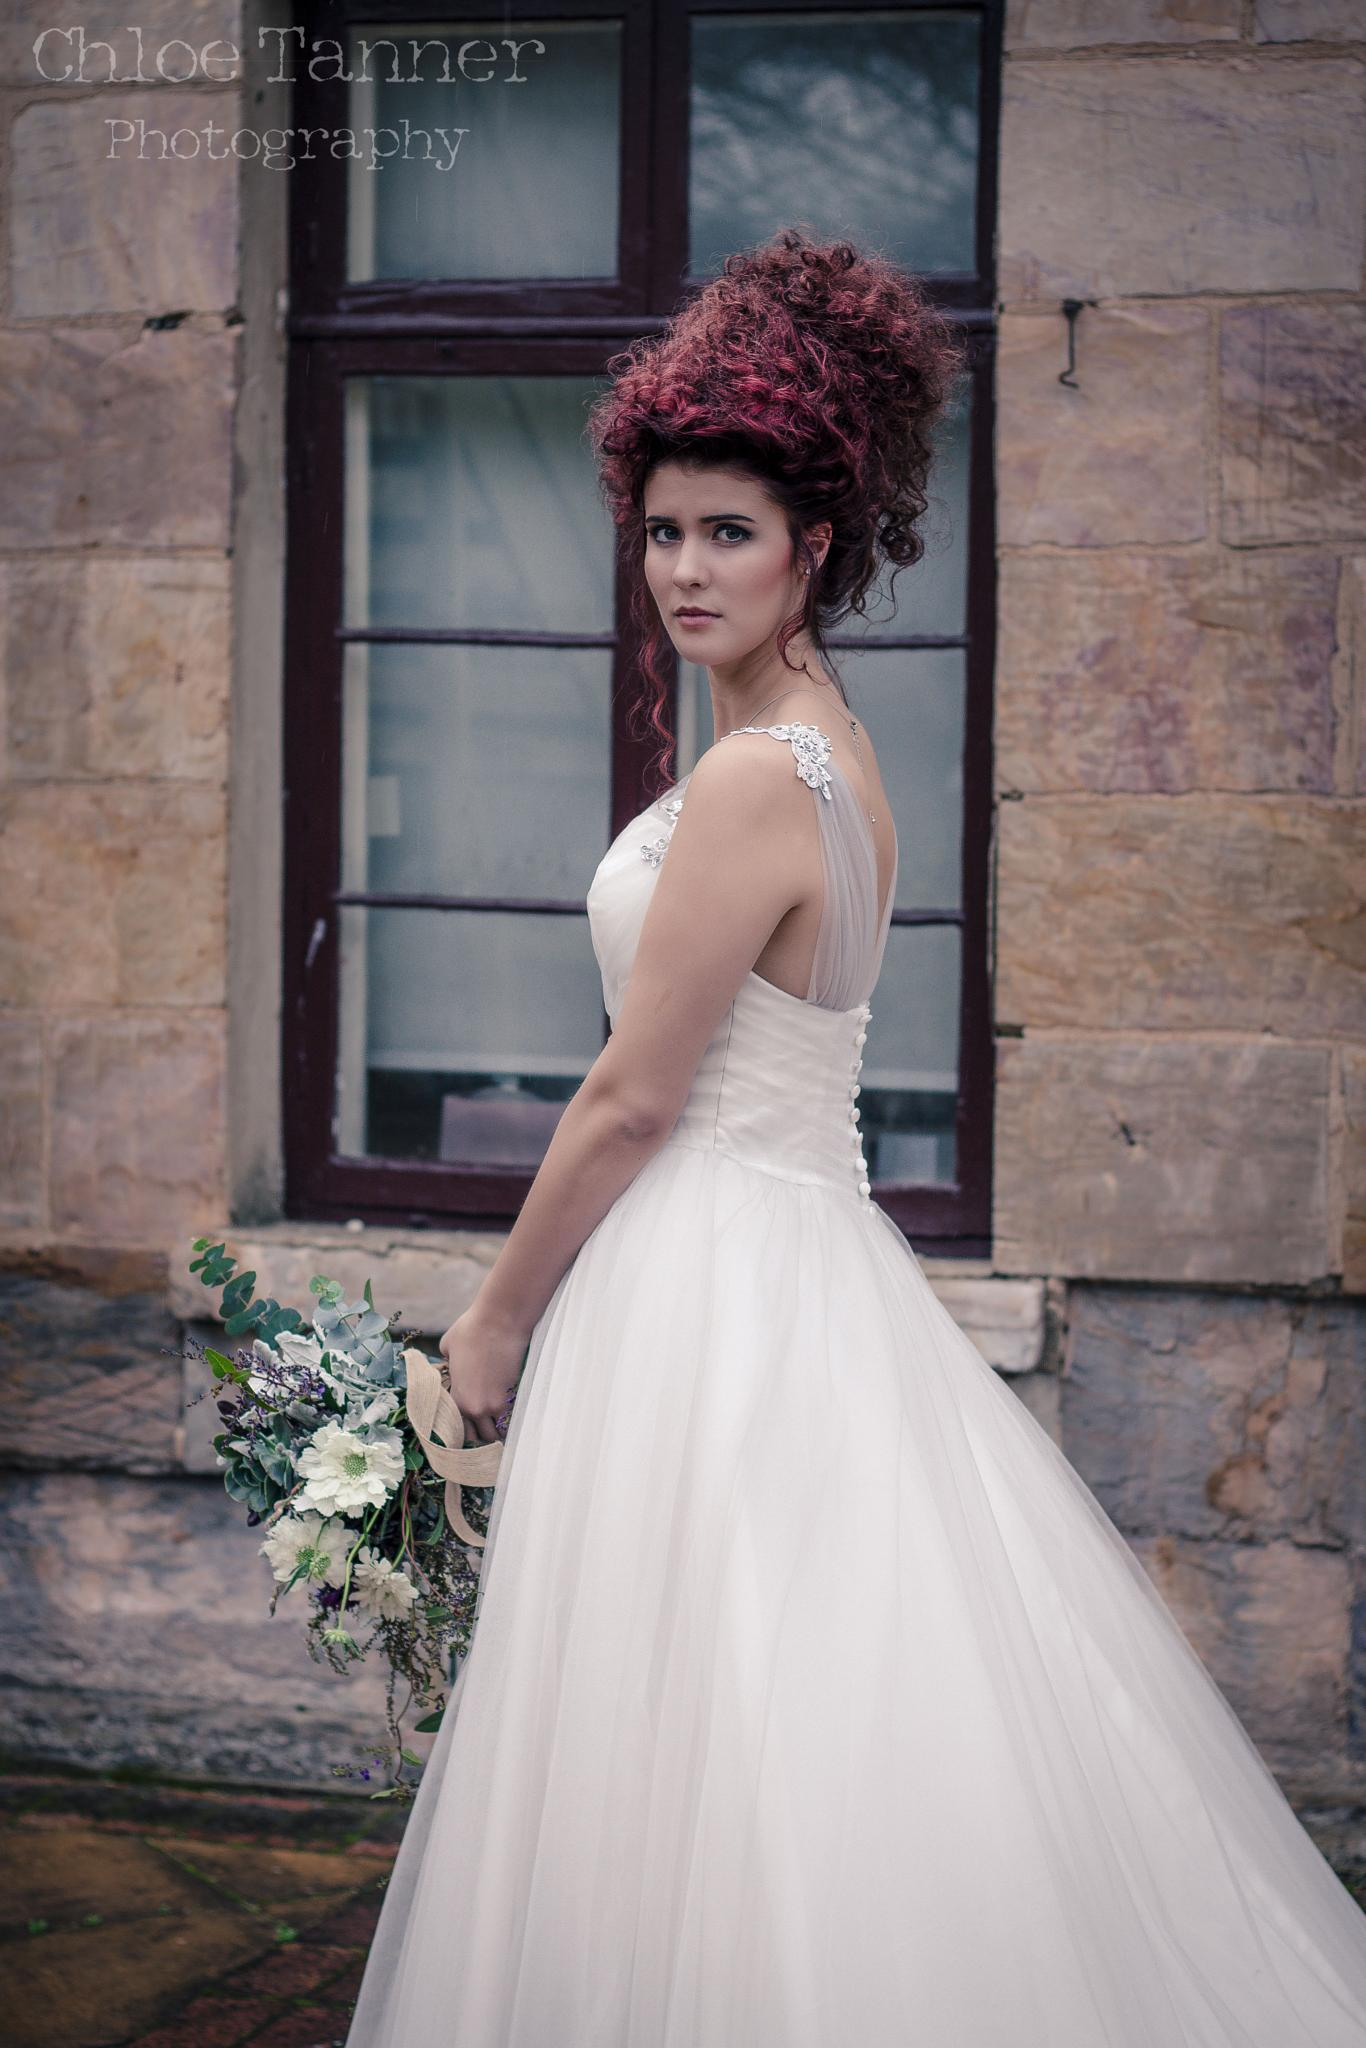 A bride in Hahndorf by Chloe Tanner